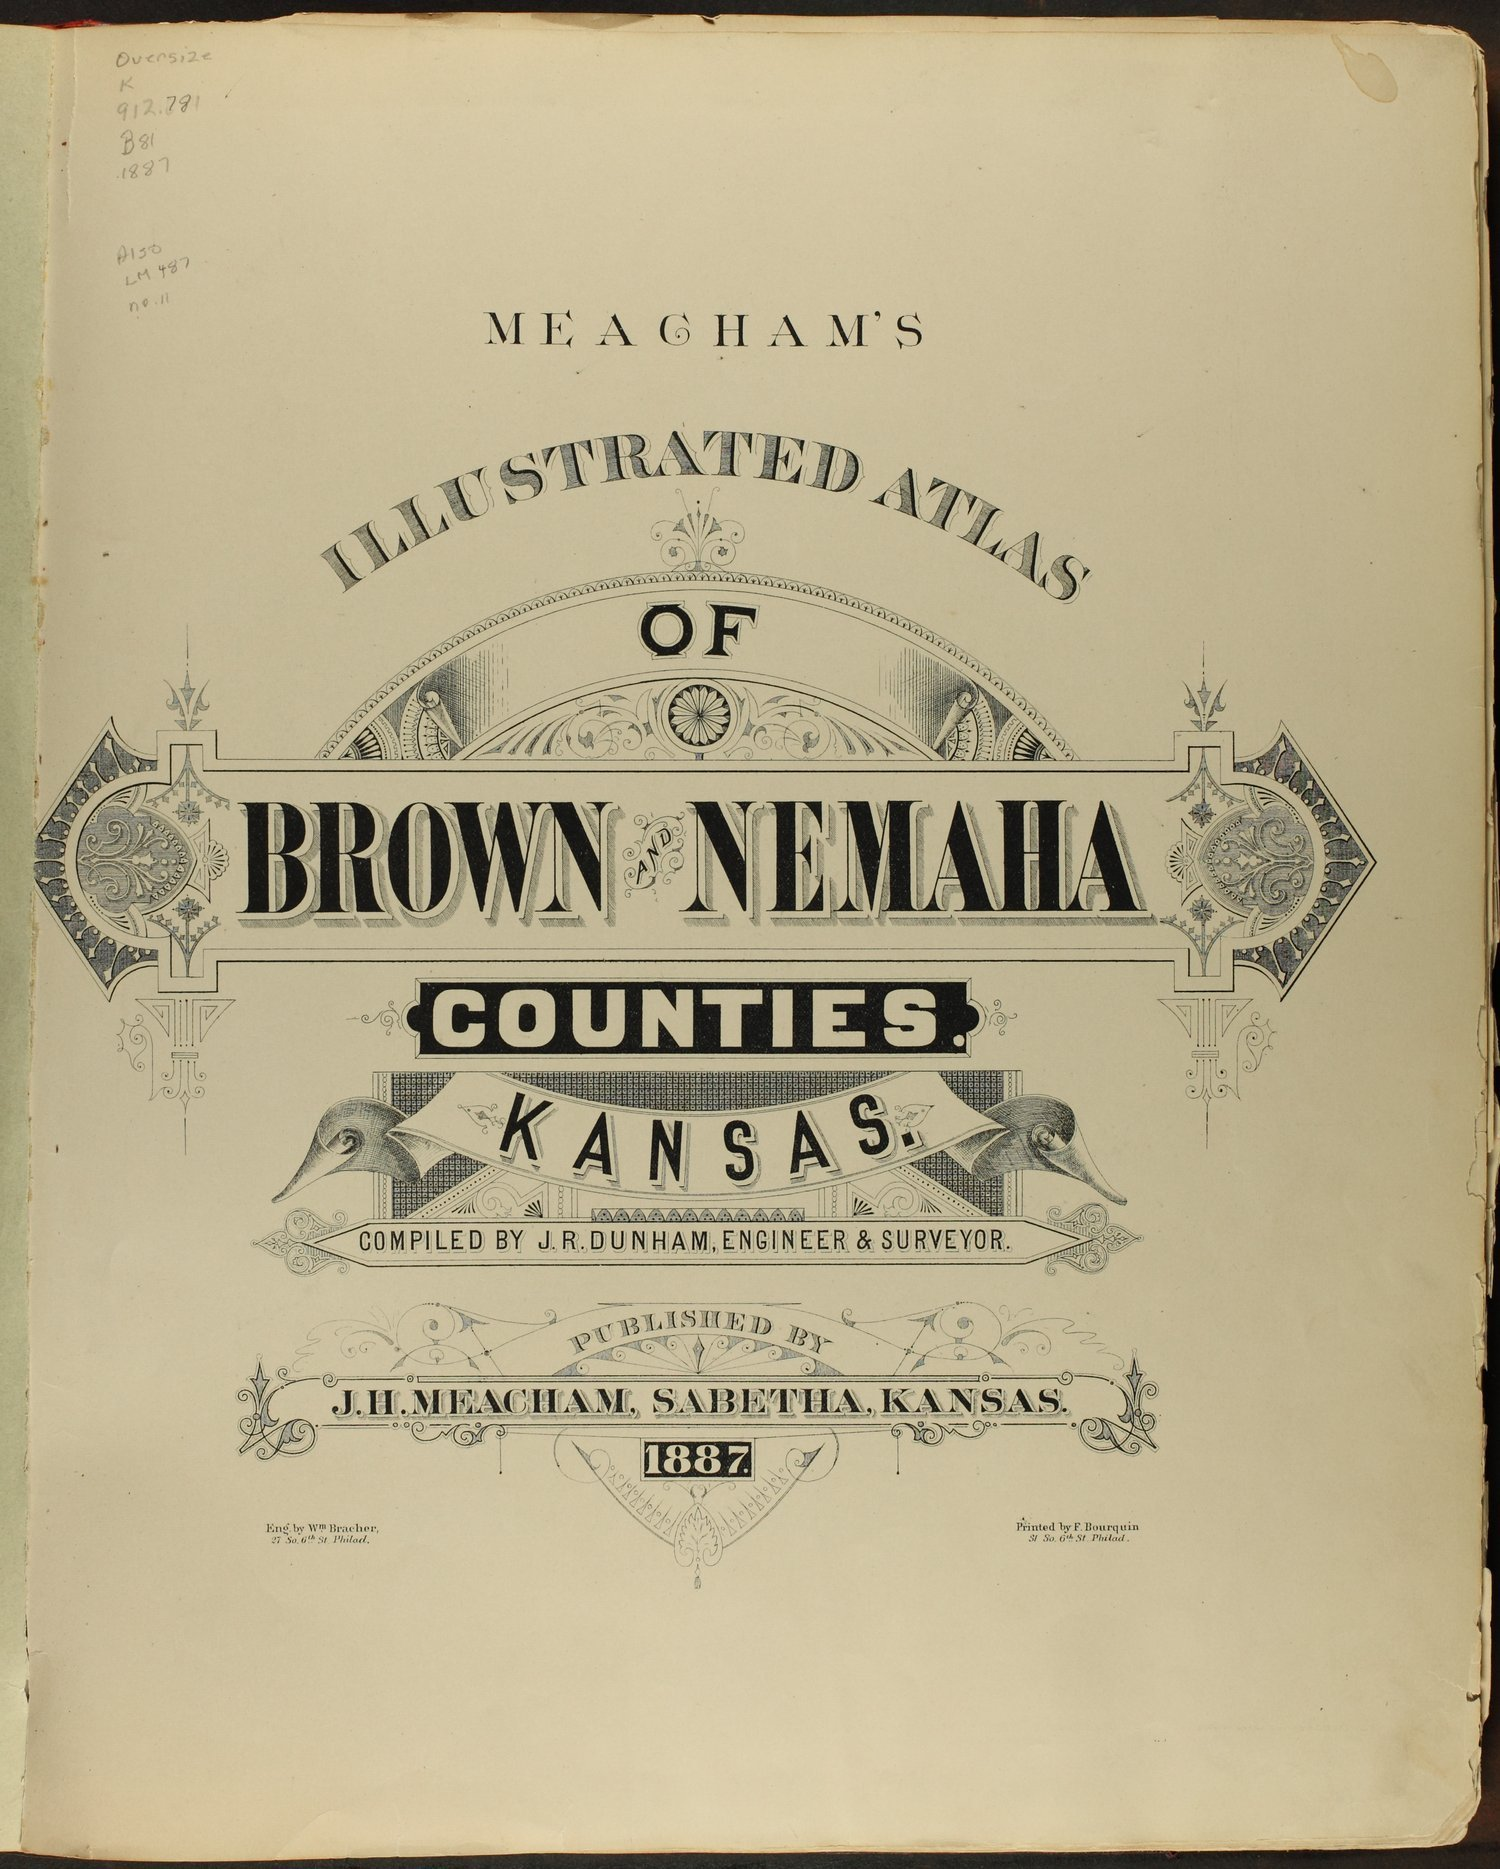 Meacham's illustrated atlas of Brown and Nemaha counties, Kansas - Title Page